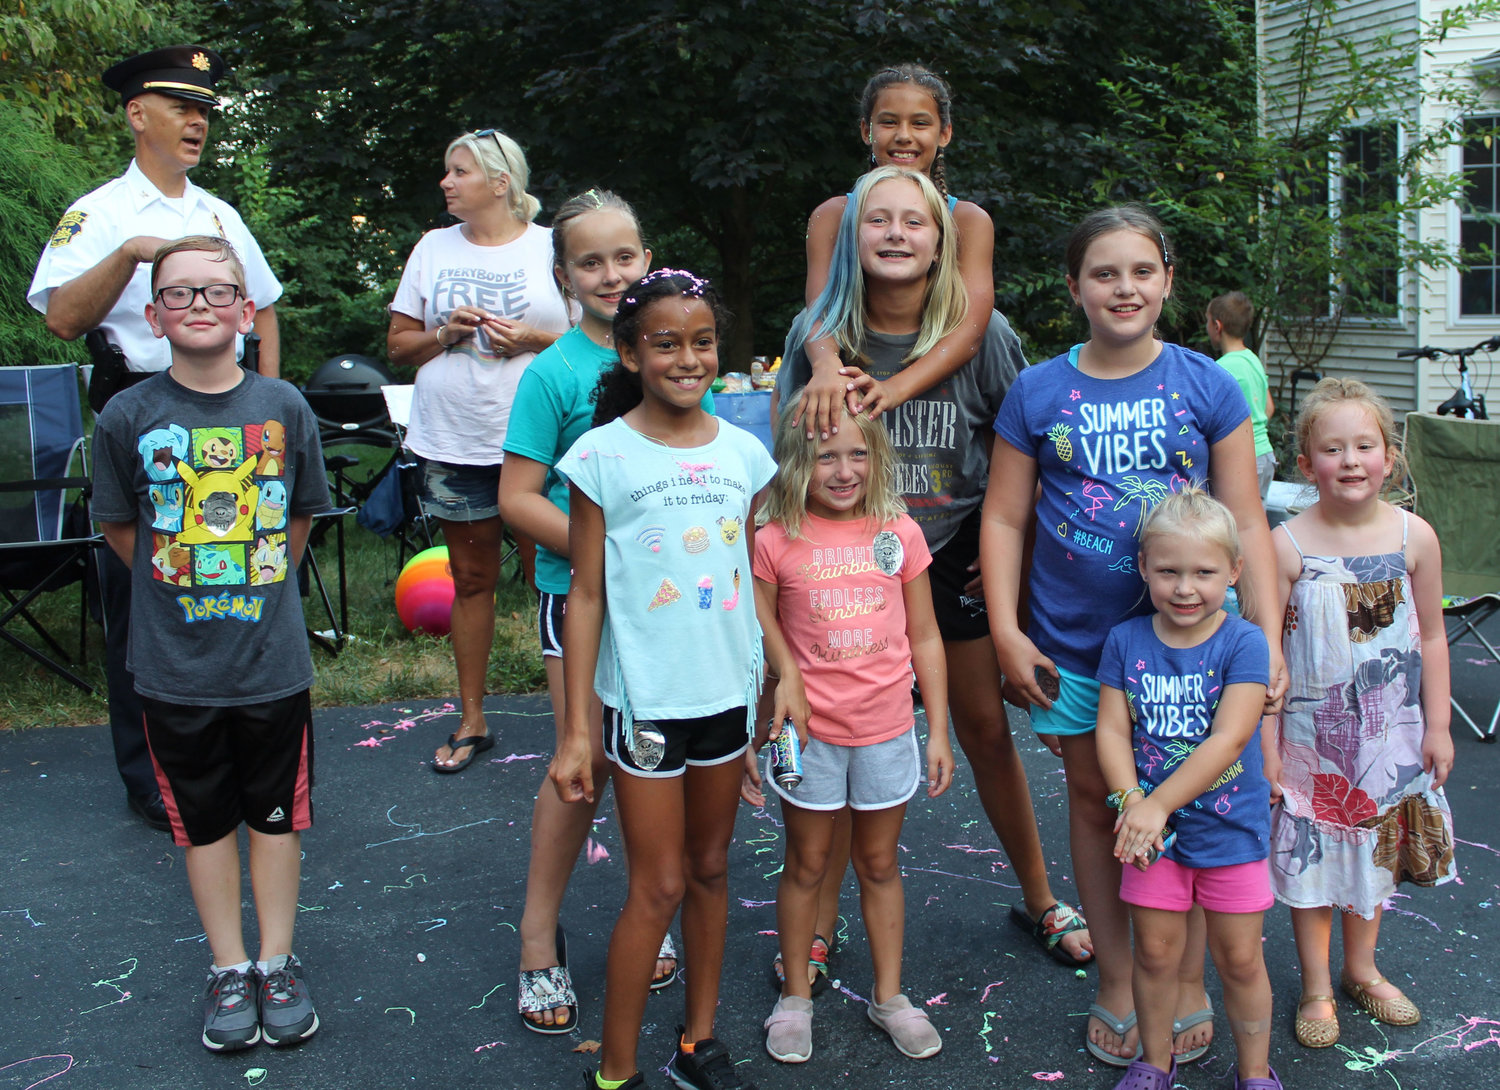 Gabriel Shaver, Kiersten Roller, Gabby Romain, Lucy Stevenson, Riley Stevenson, Safia Aman (on back), Olivia Miller, Rylee Miller, and Madelynn Shaver play during National Night Out in Lower Swatara on Aug. 6.